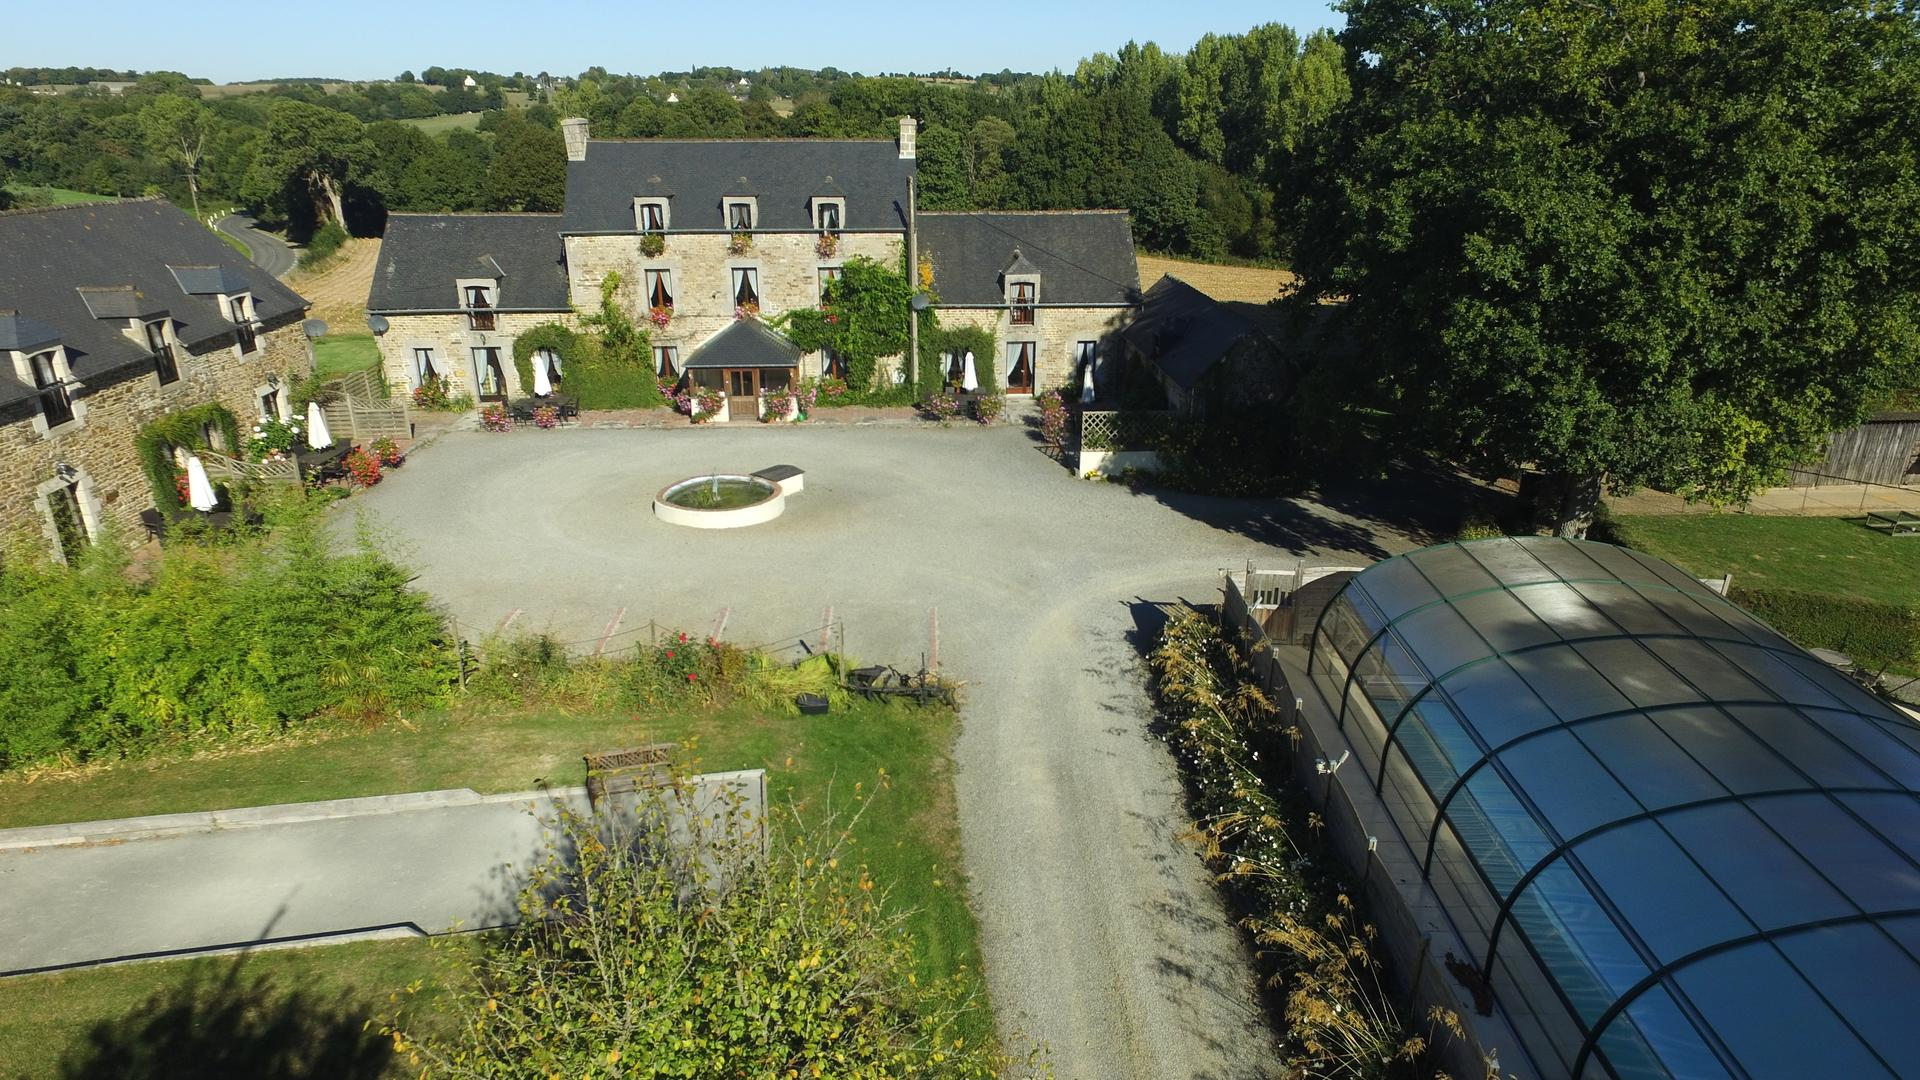 Baby friendly holiday cottage in Brittany - CHPM